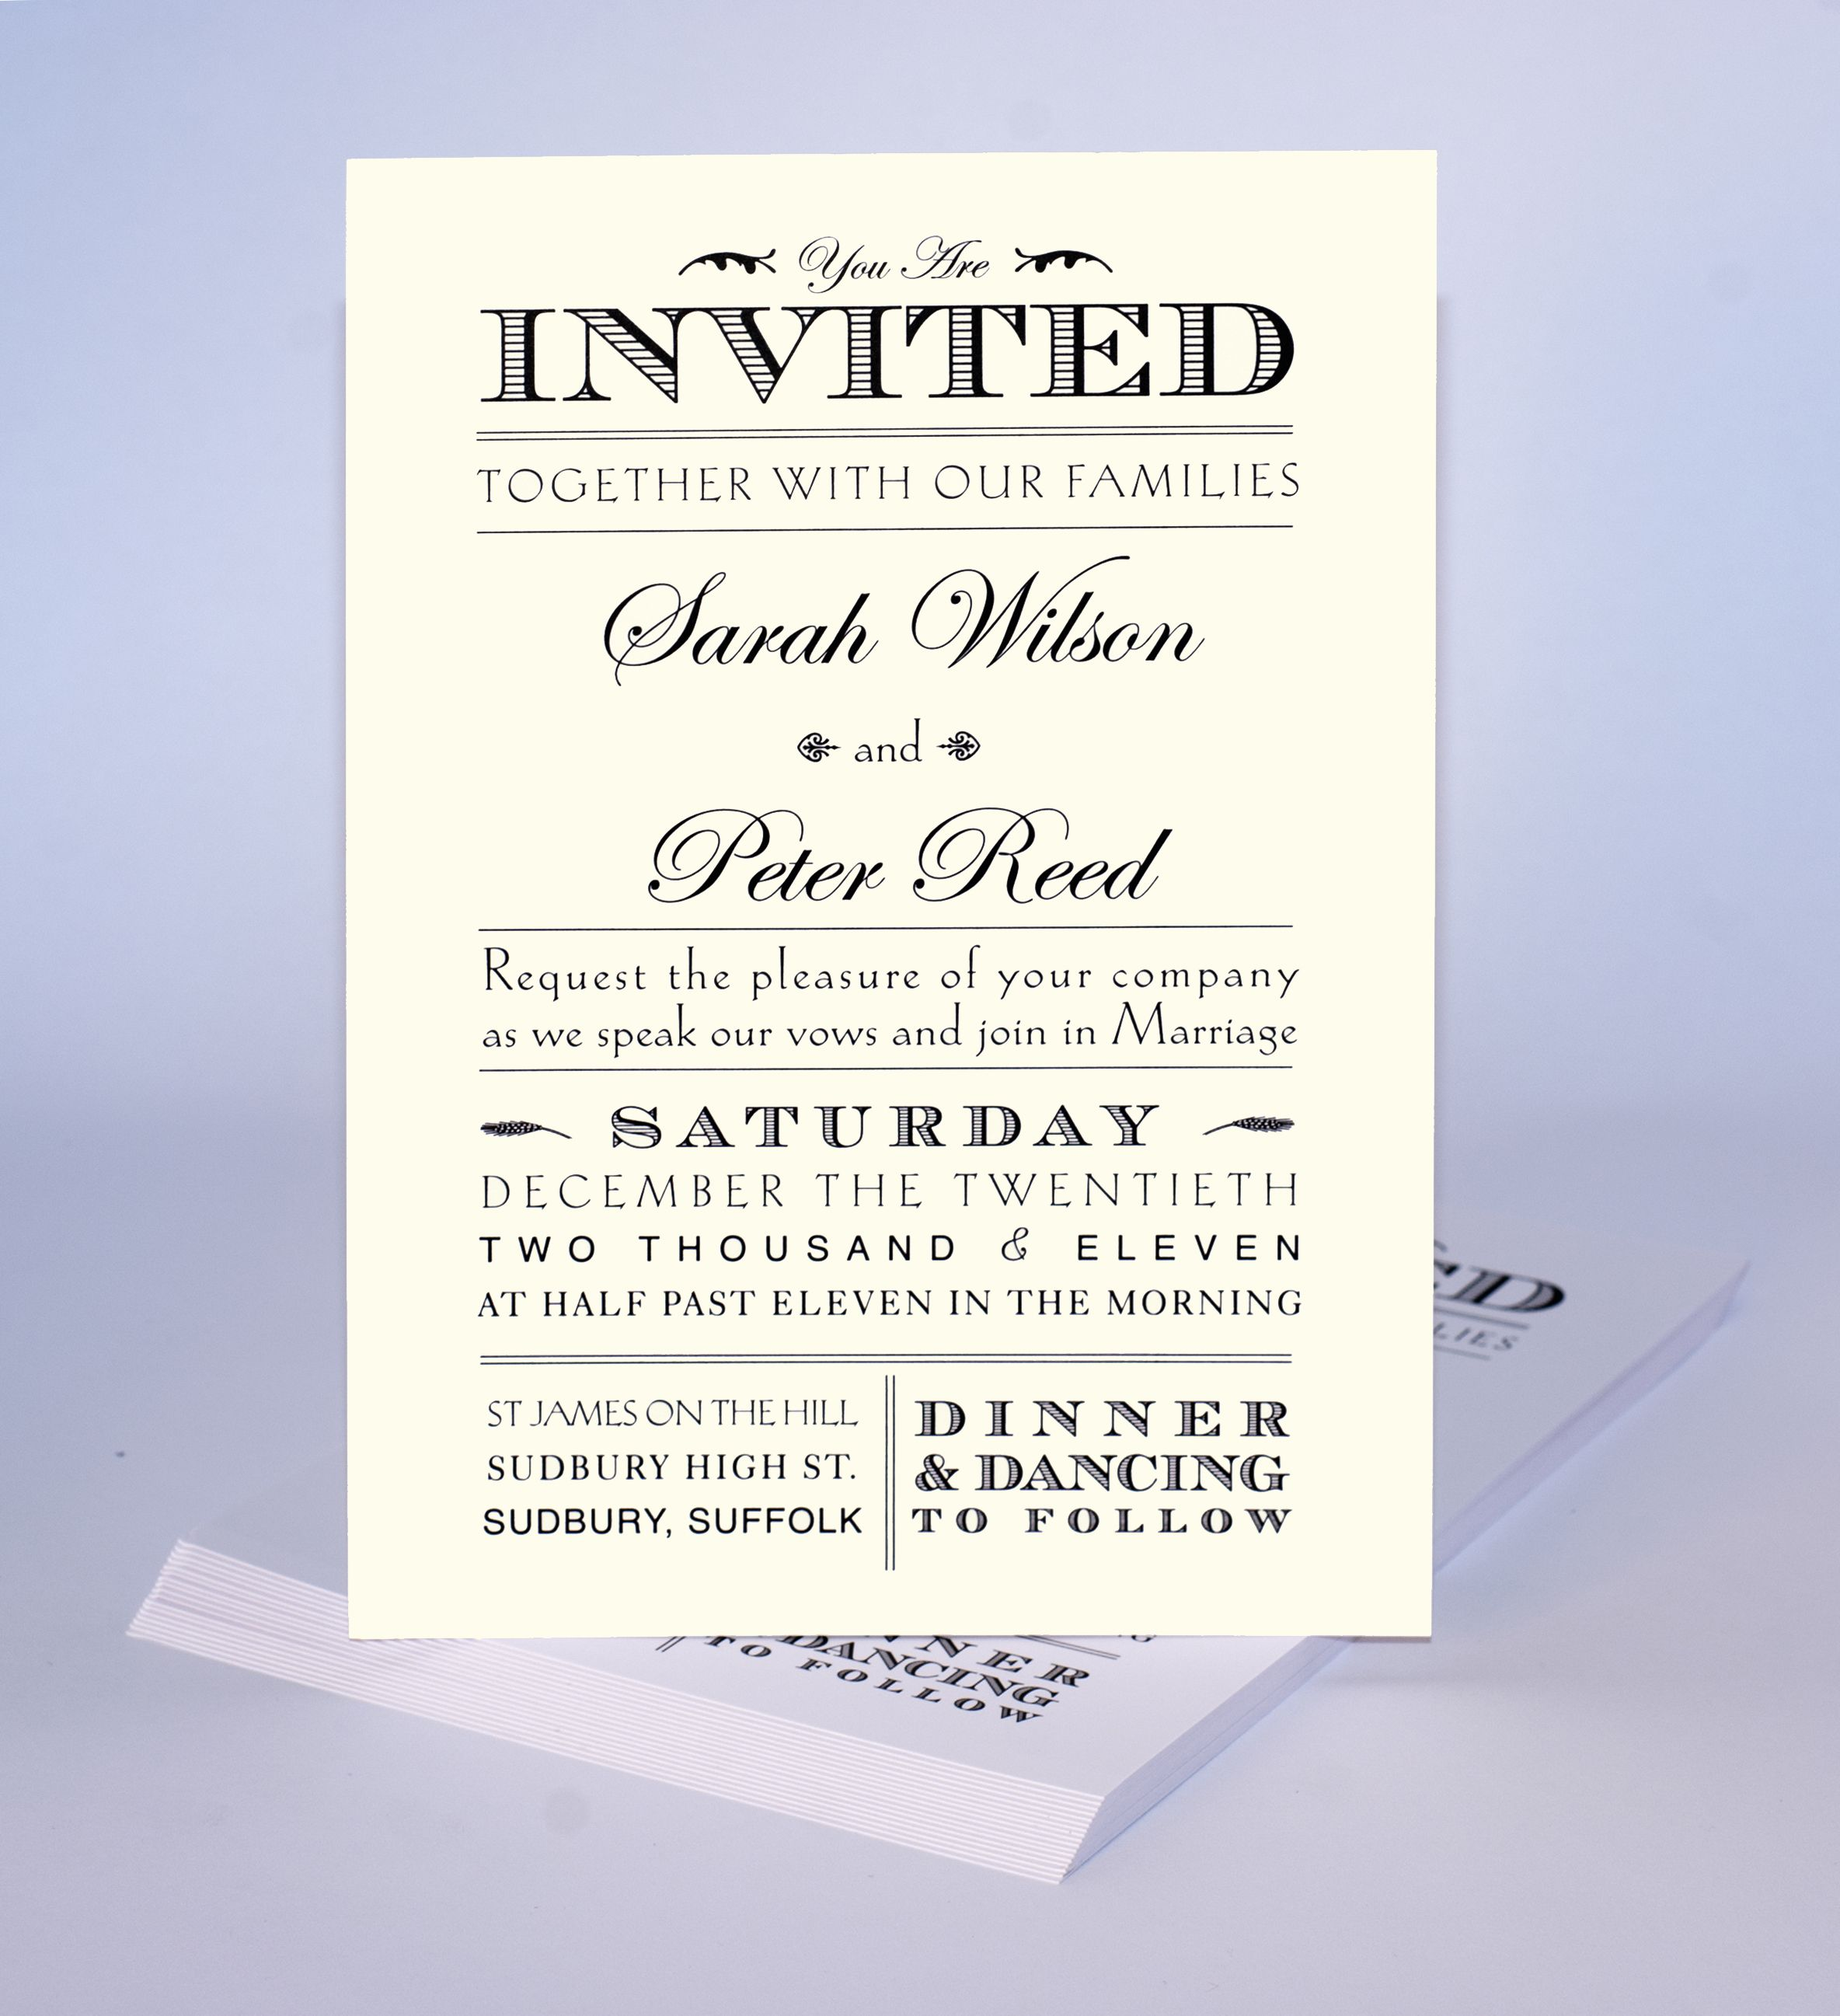 Inspiration invitations pinterest for Wedding invitation samples with pictures